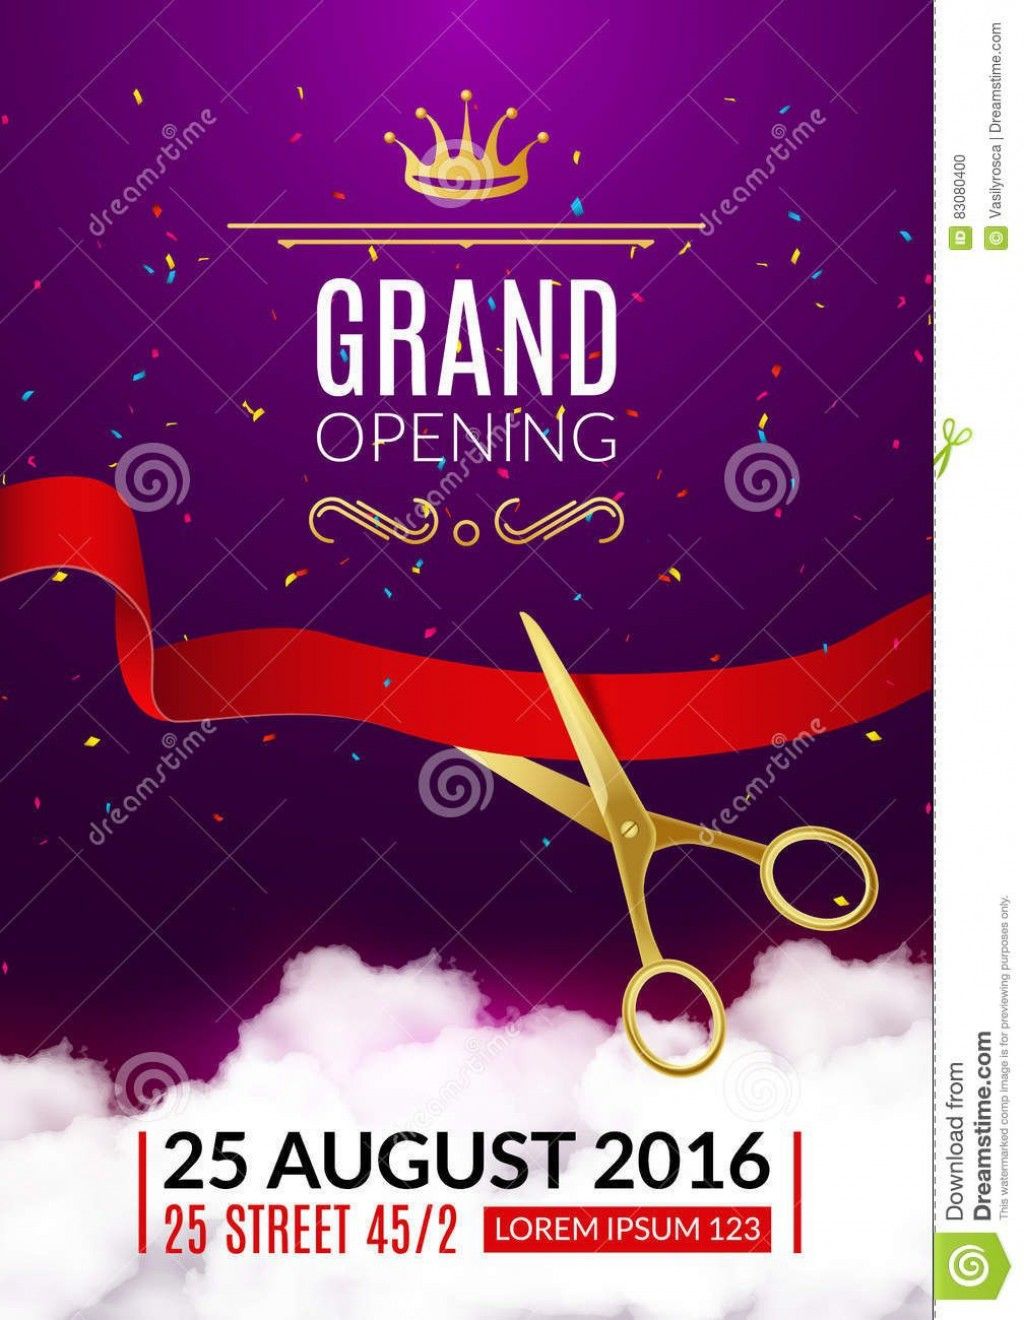 007 Exceptional Grand Opening Flyer Template Free Picture  RestaurantLarge